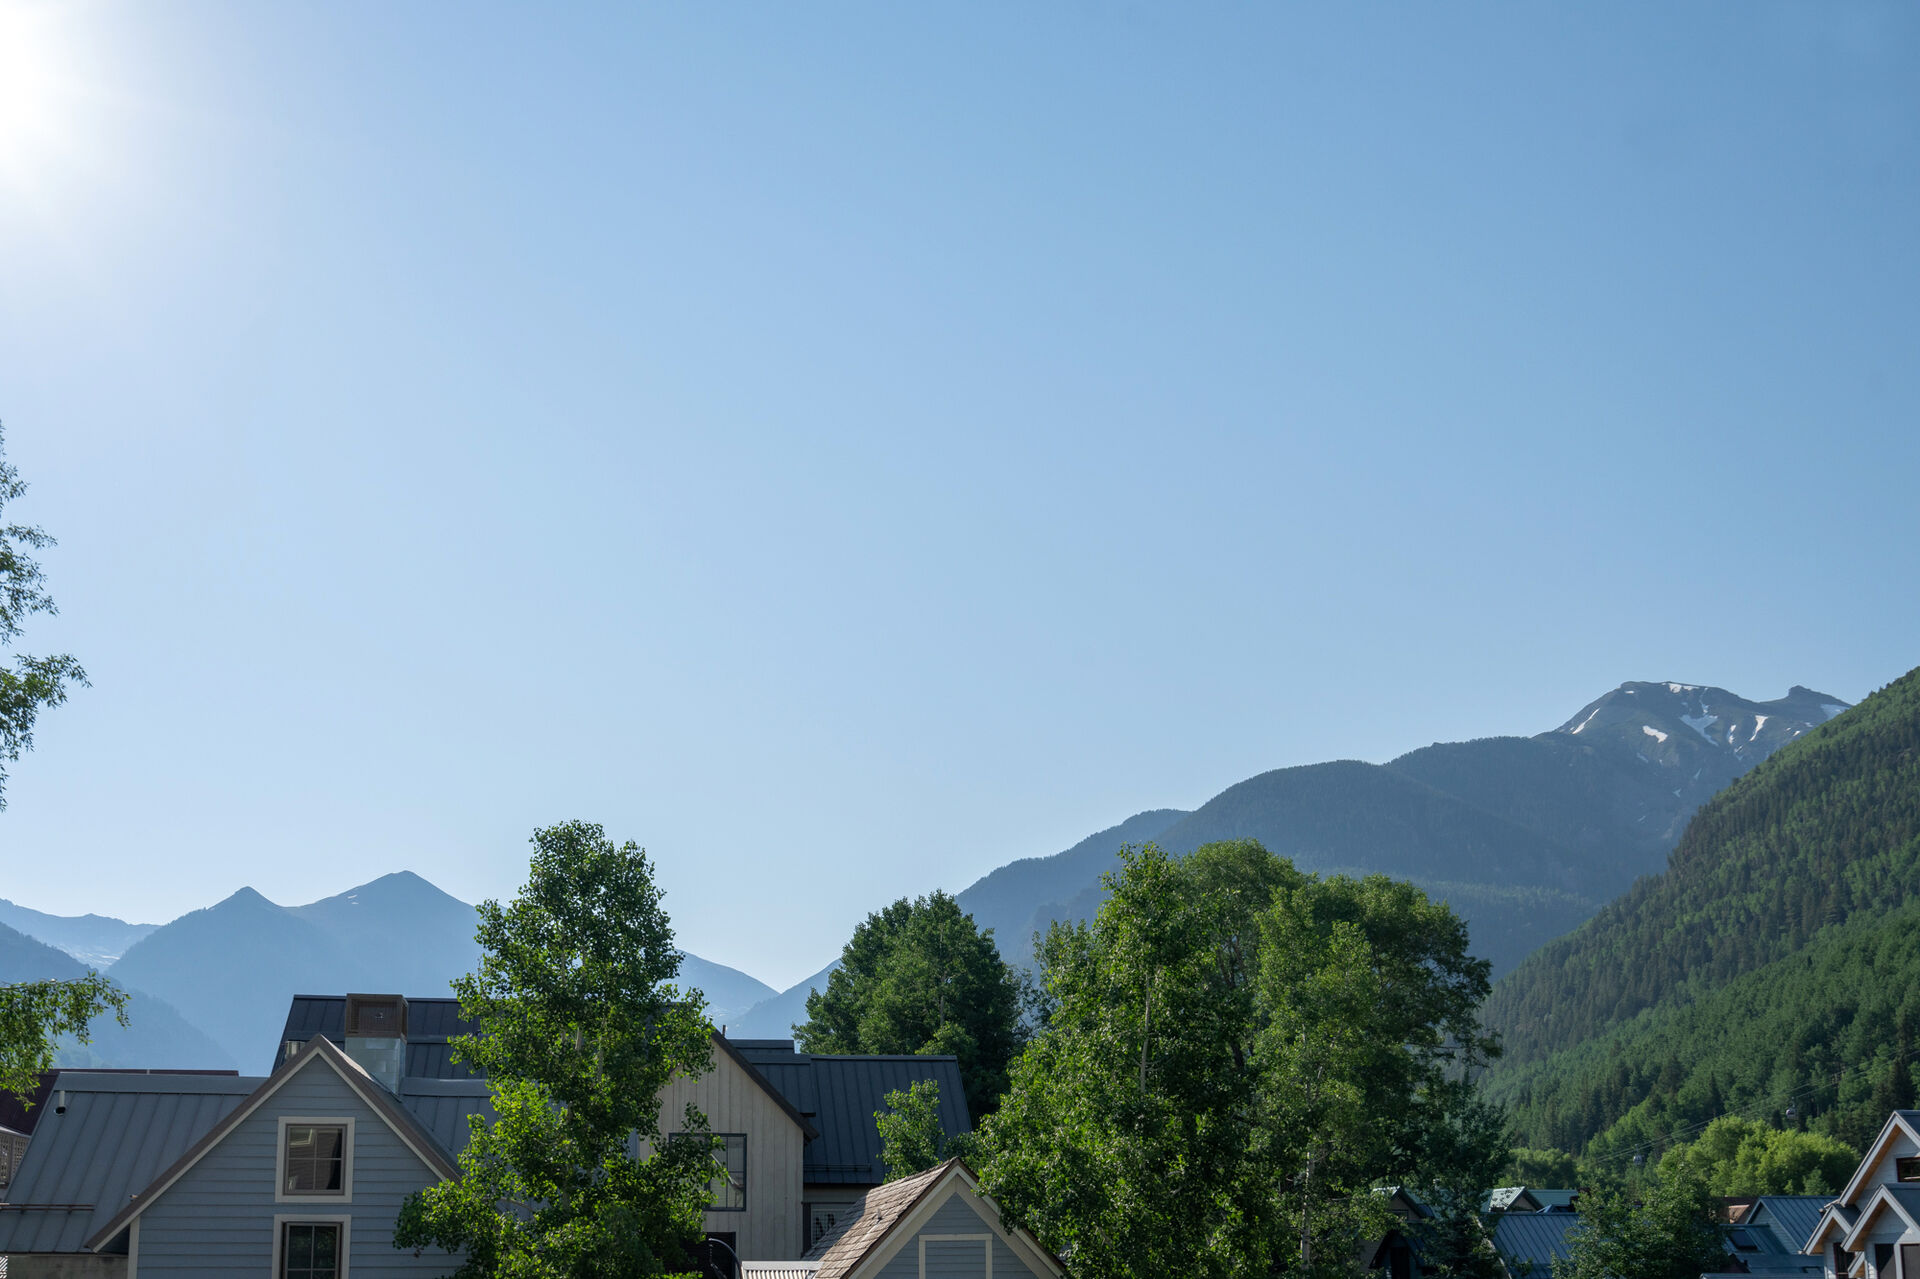 View of the mountain, trees and houses